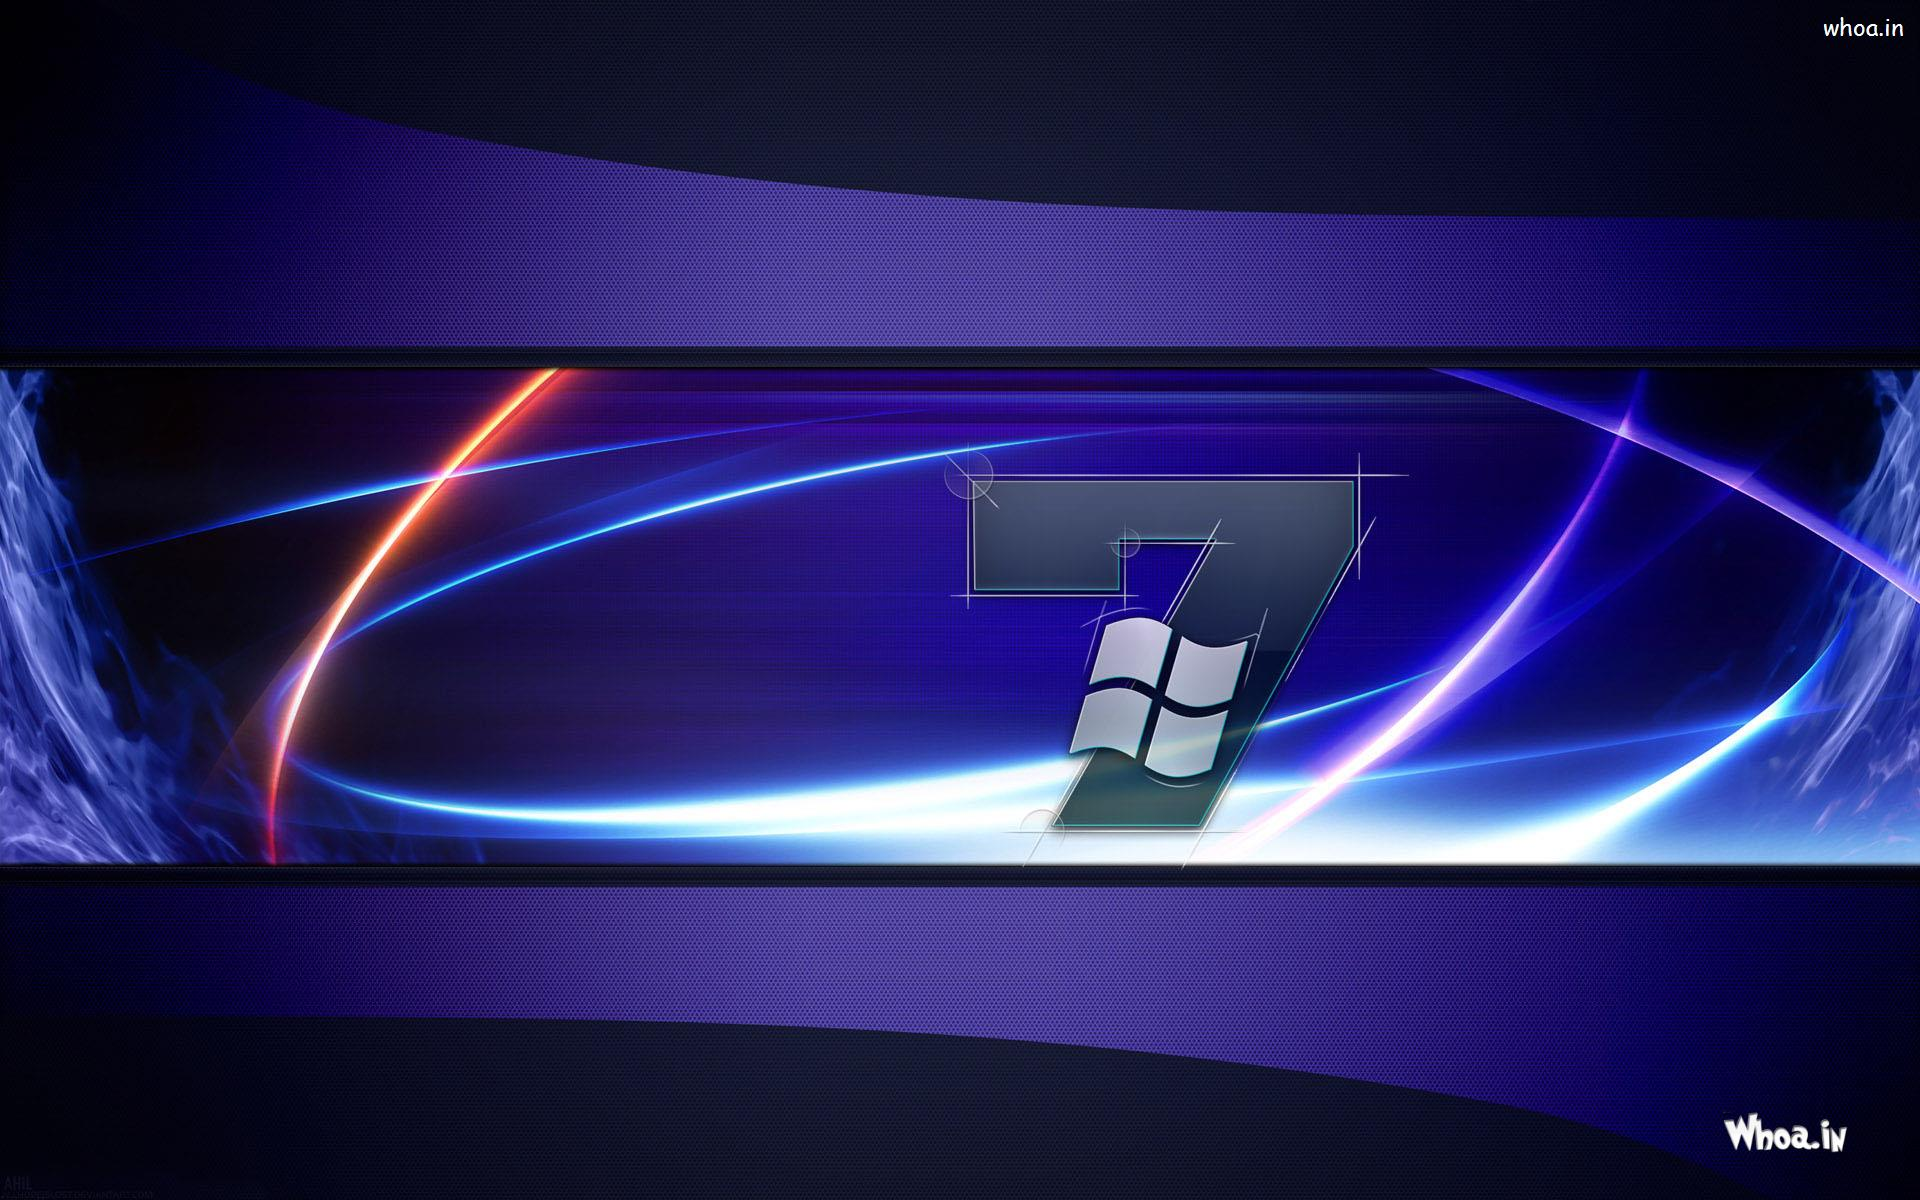 windows 7 hd wallpaper for free download